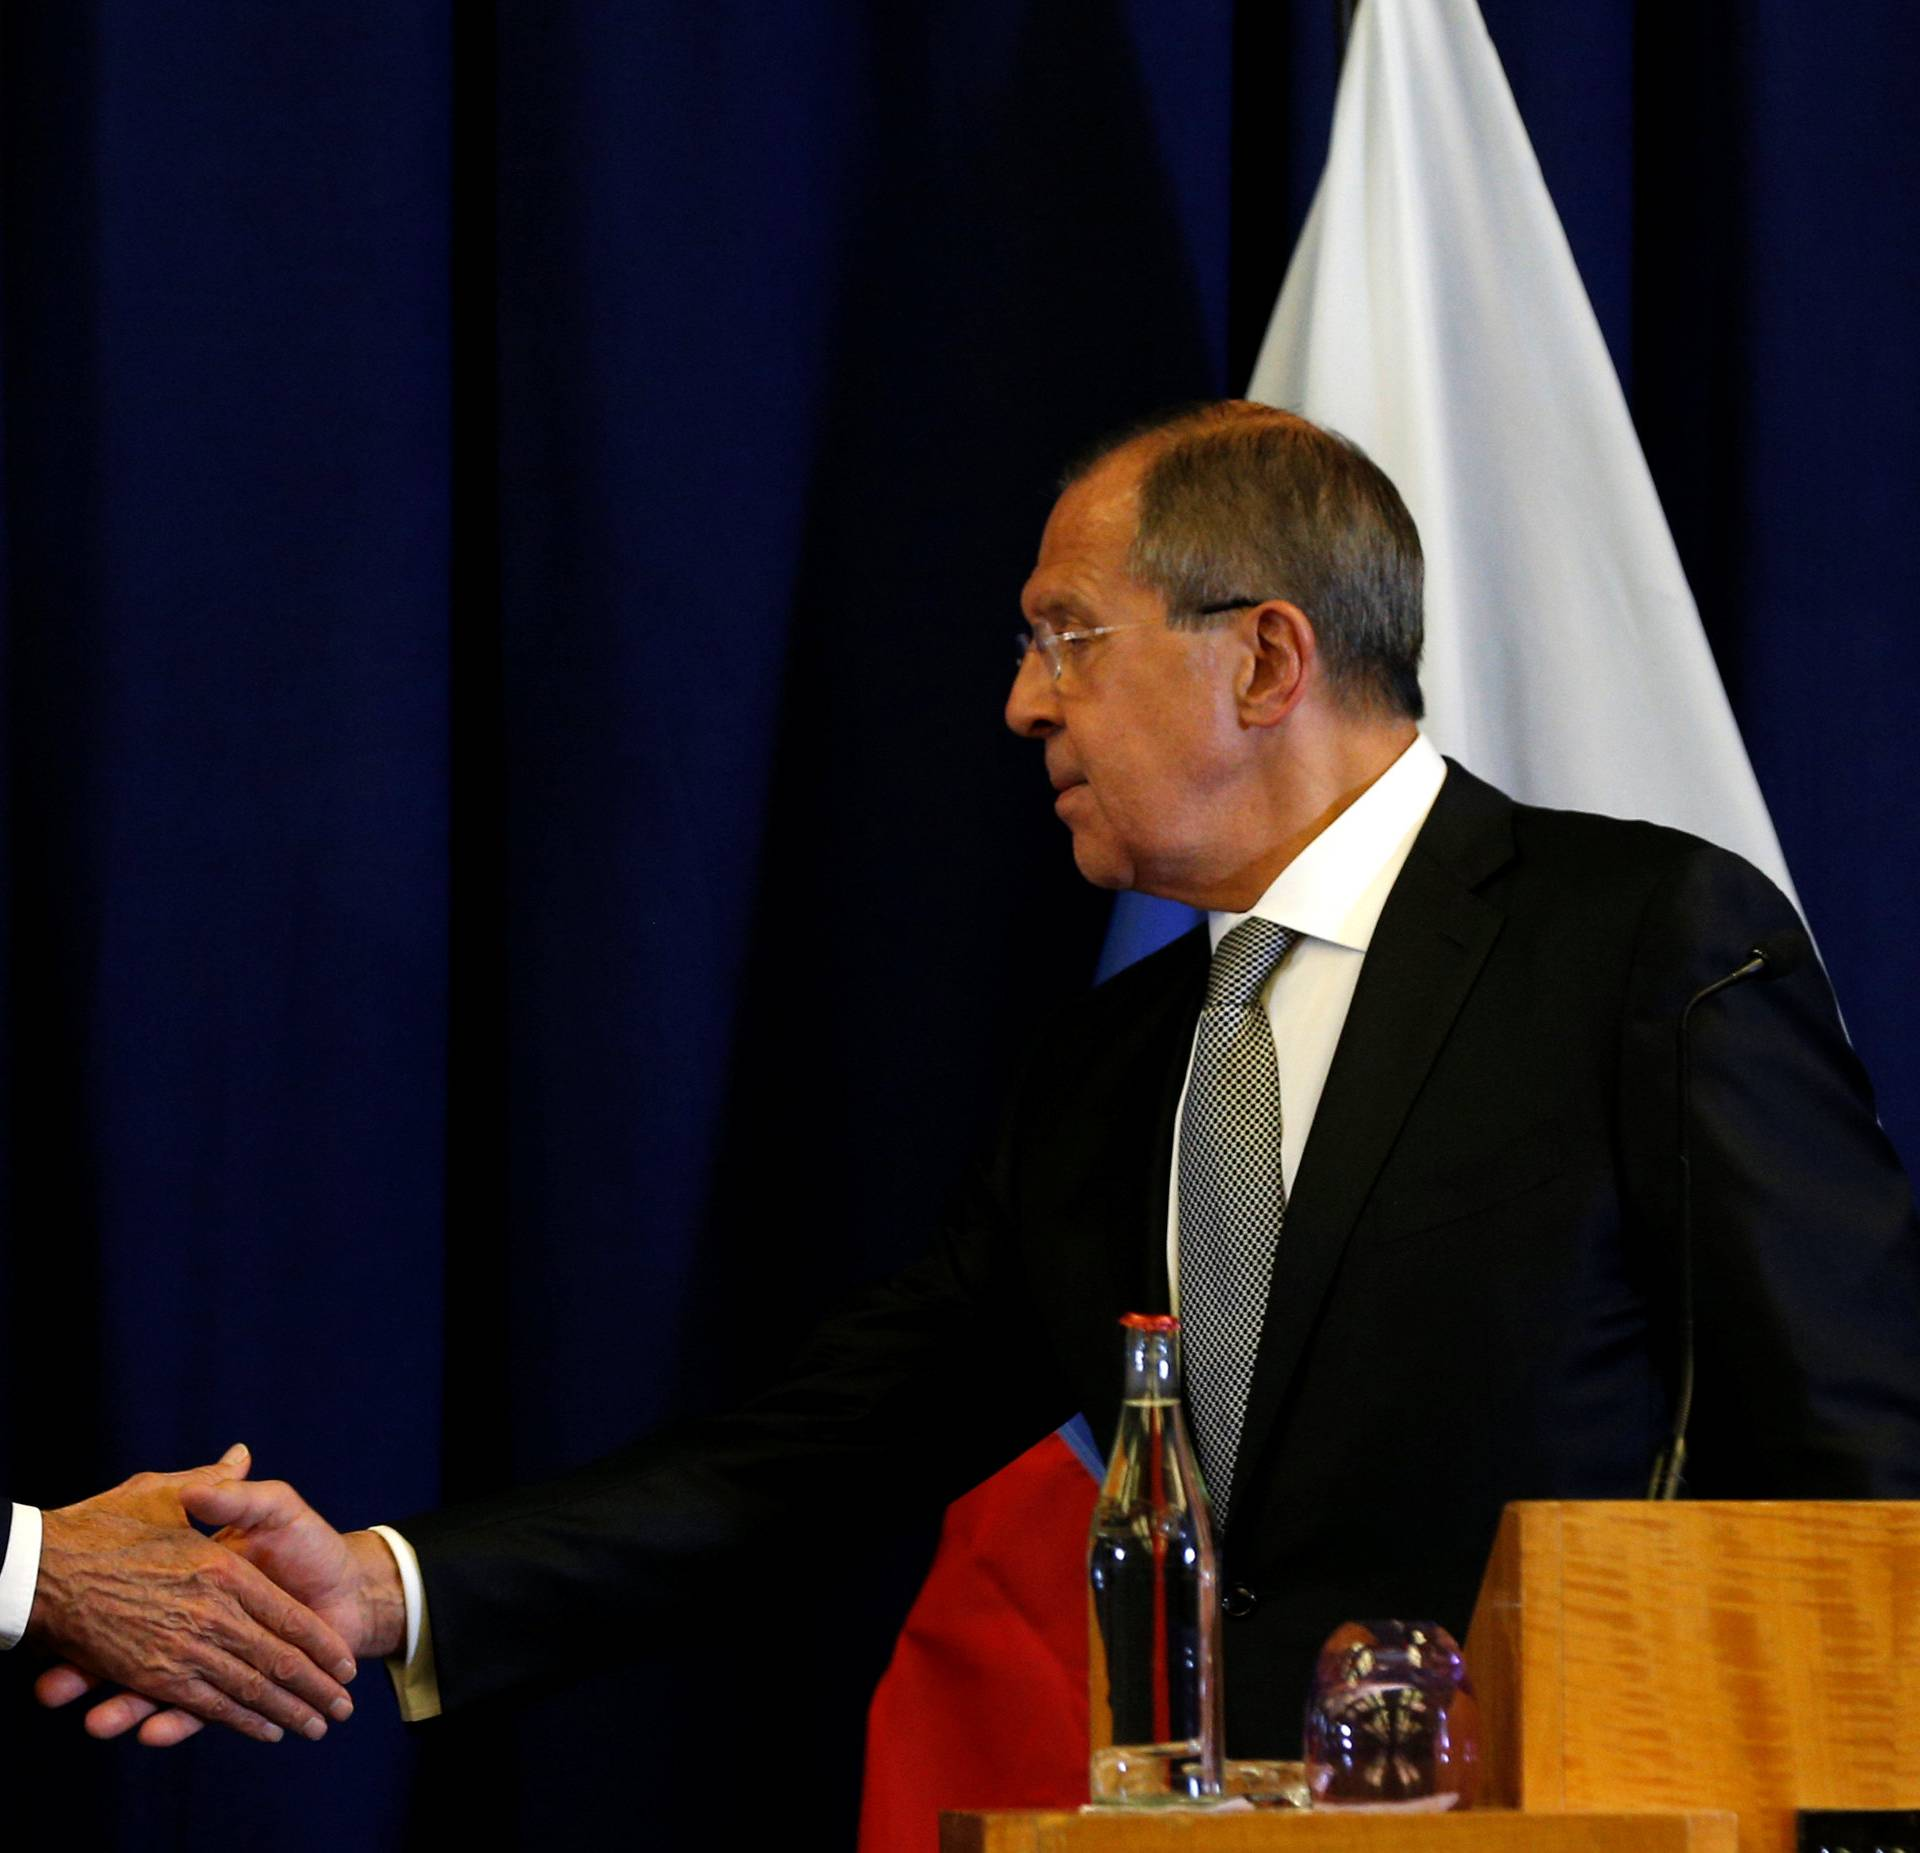 John Kerry and Russian Foreign Minister Sergei Lavrov hold a press conference in Geneva